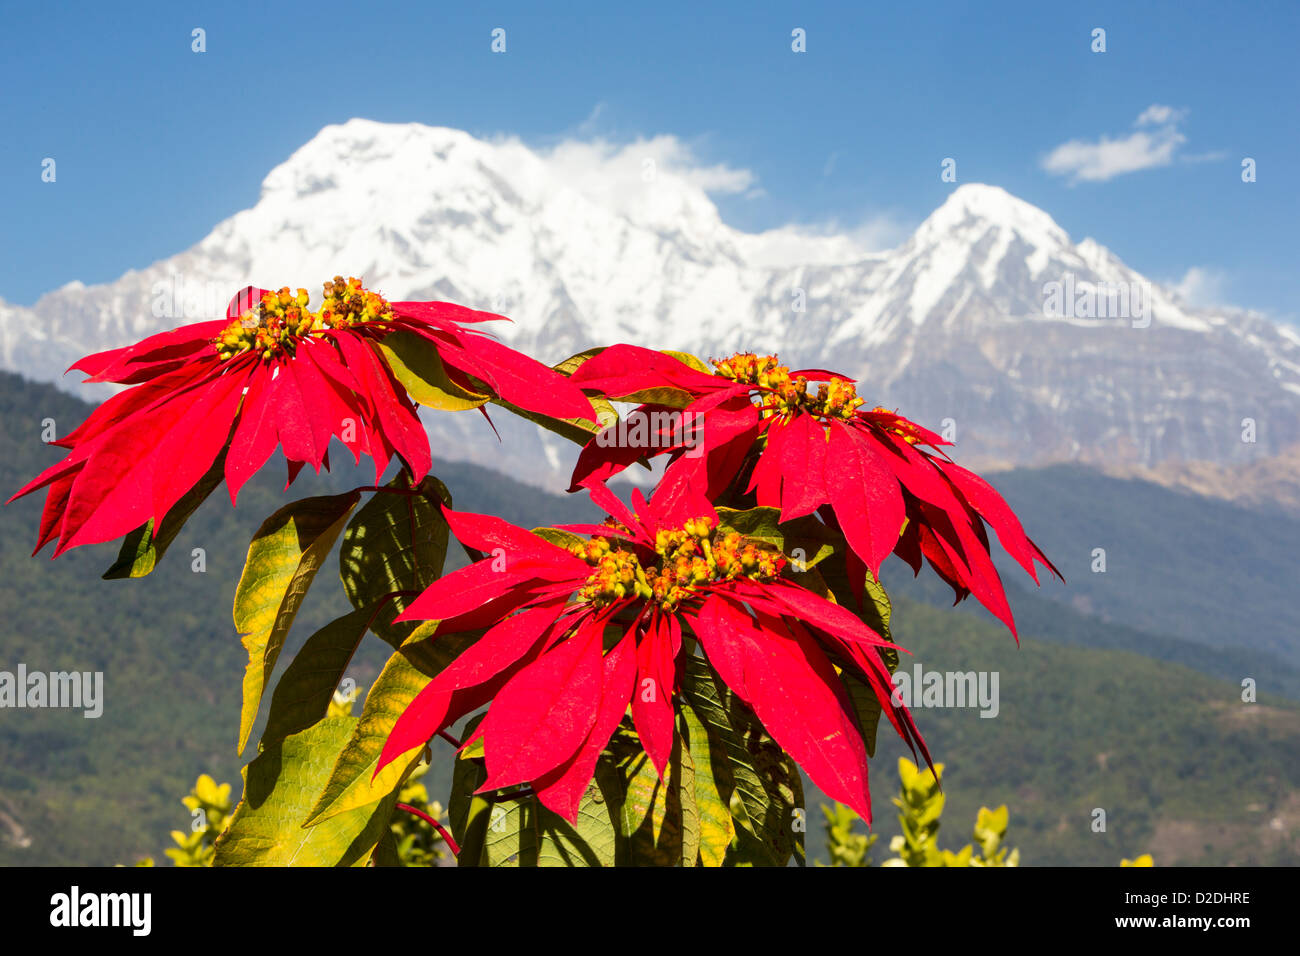 Poinsettia trees flowering in the Himalayas near Pokhara, Nepal, with Annapurna South in the background. - Stock Image